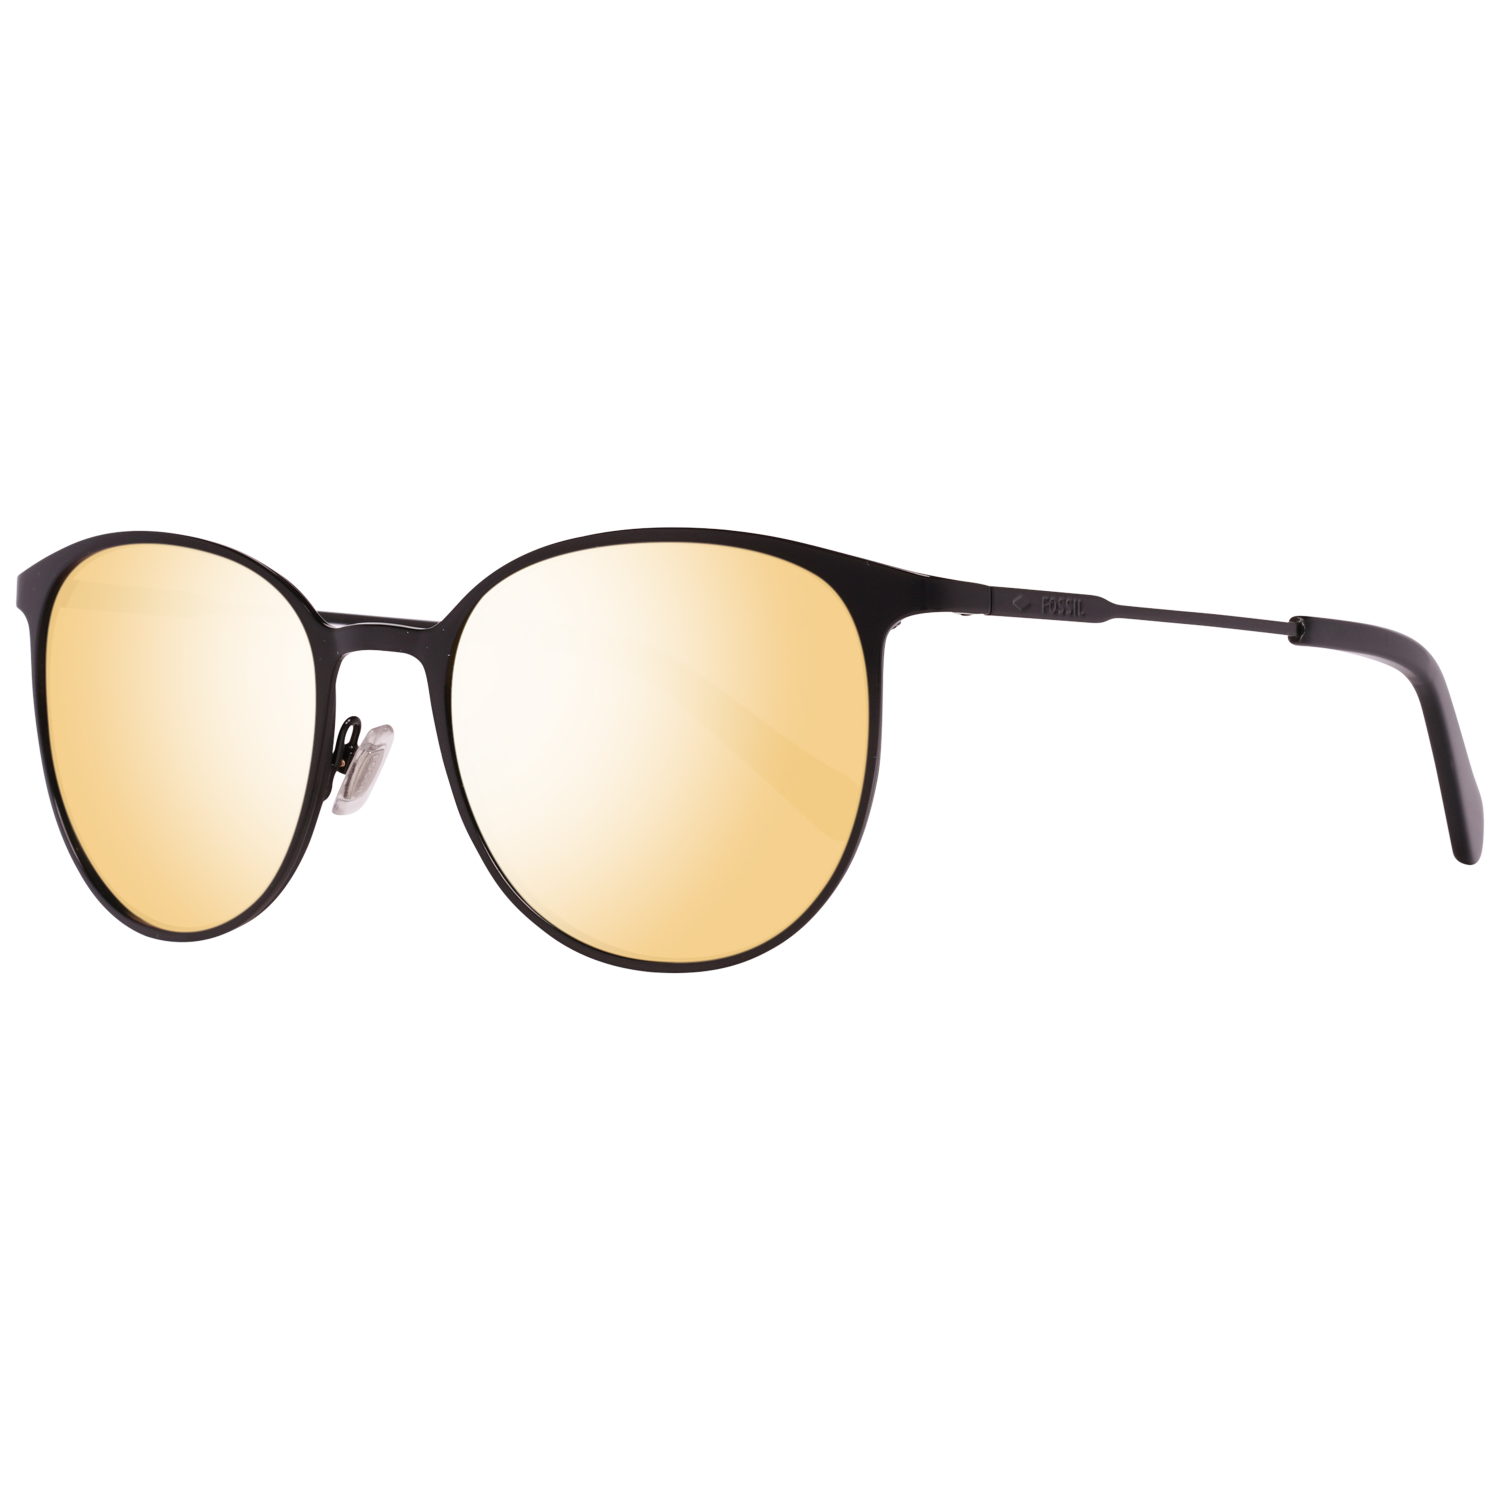 Fossil Sunglasses FOS 3084/S 3 53 Black